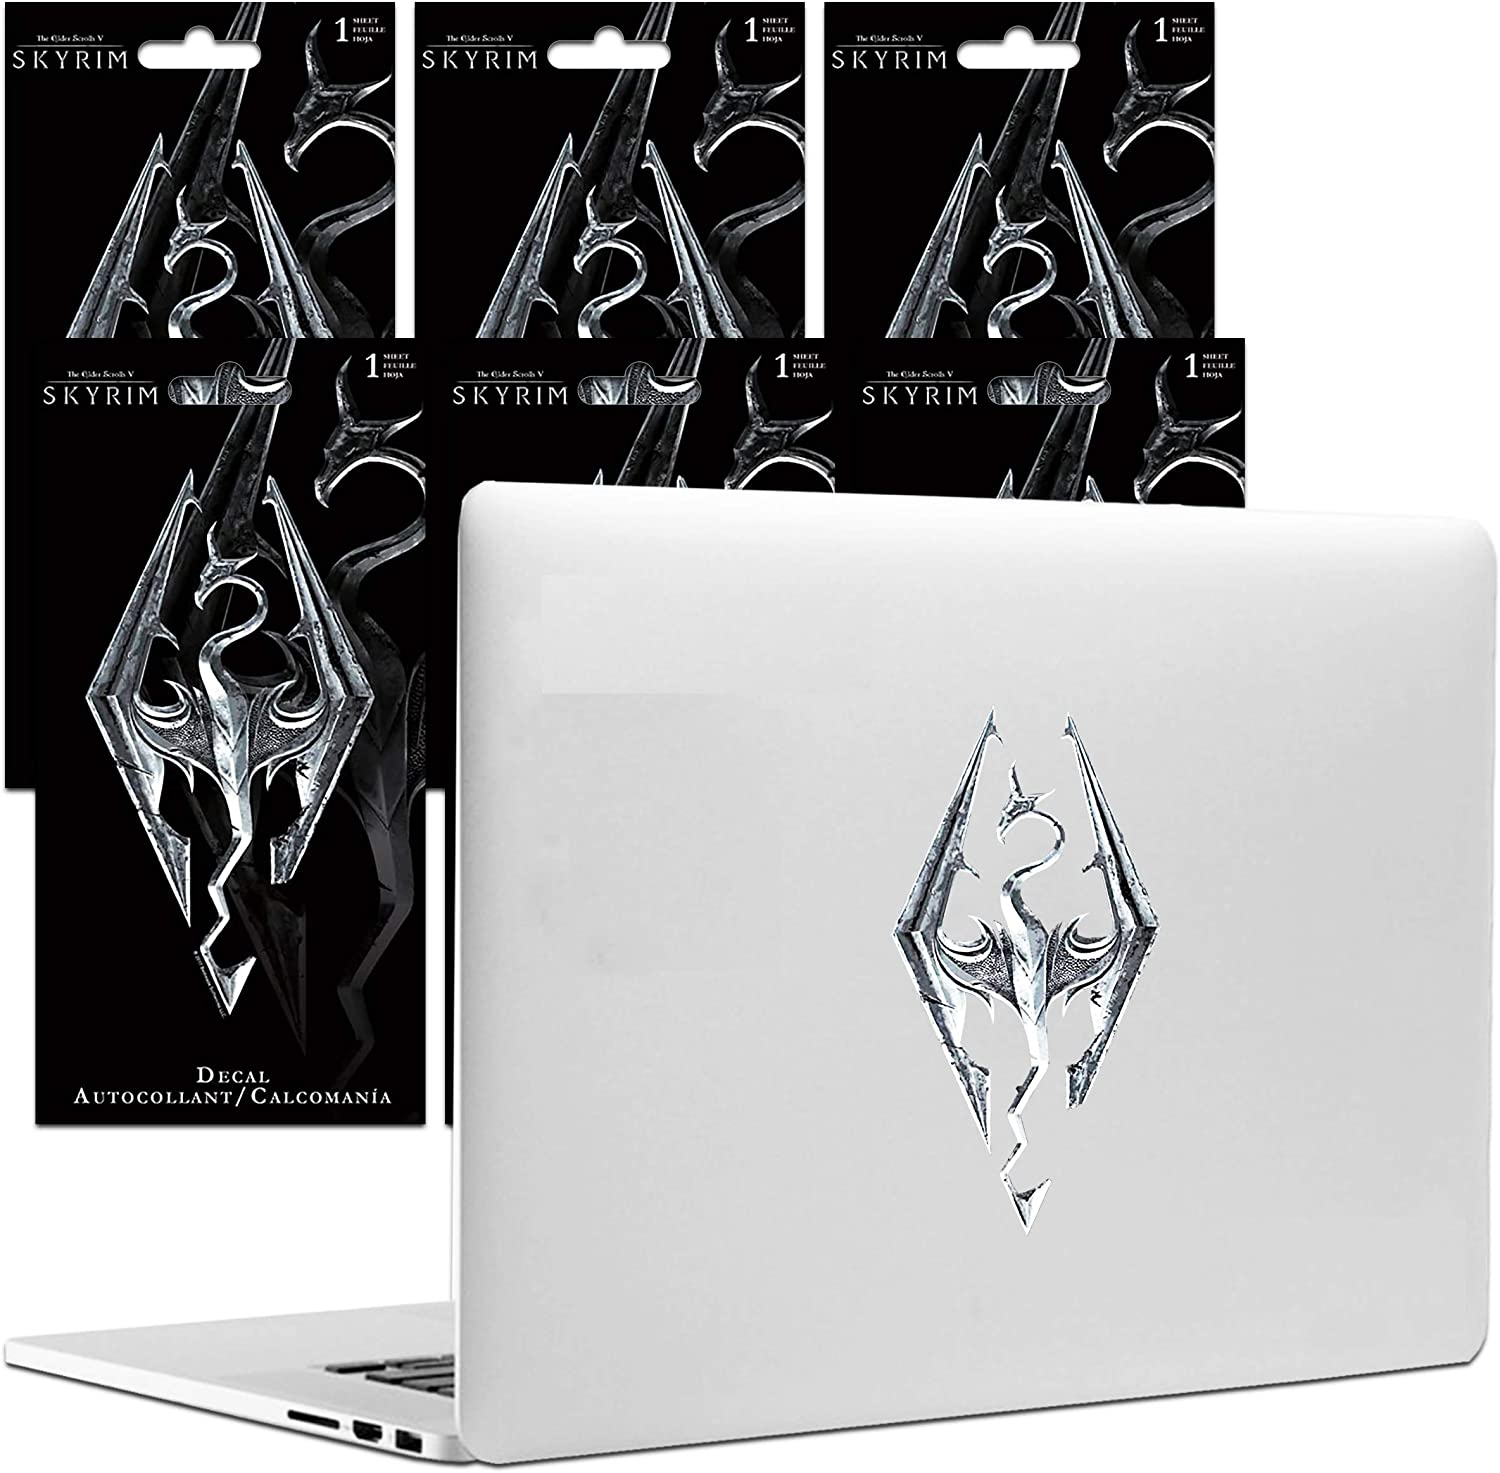 Skyrim Room Decor Video Game Sticker Bundle - 6 Pack Deluxe Skyrim Decal Sticker Set Video Game Decal for Cars Auto Walls Laptop (Skyrim Video Game Party Favors)